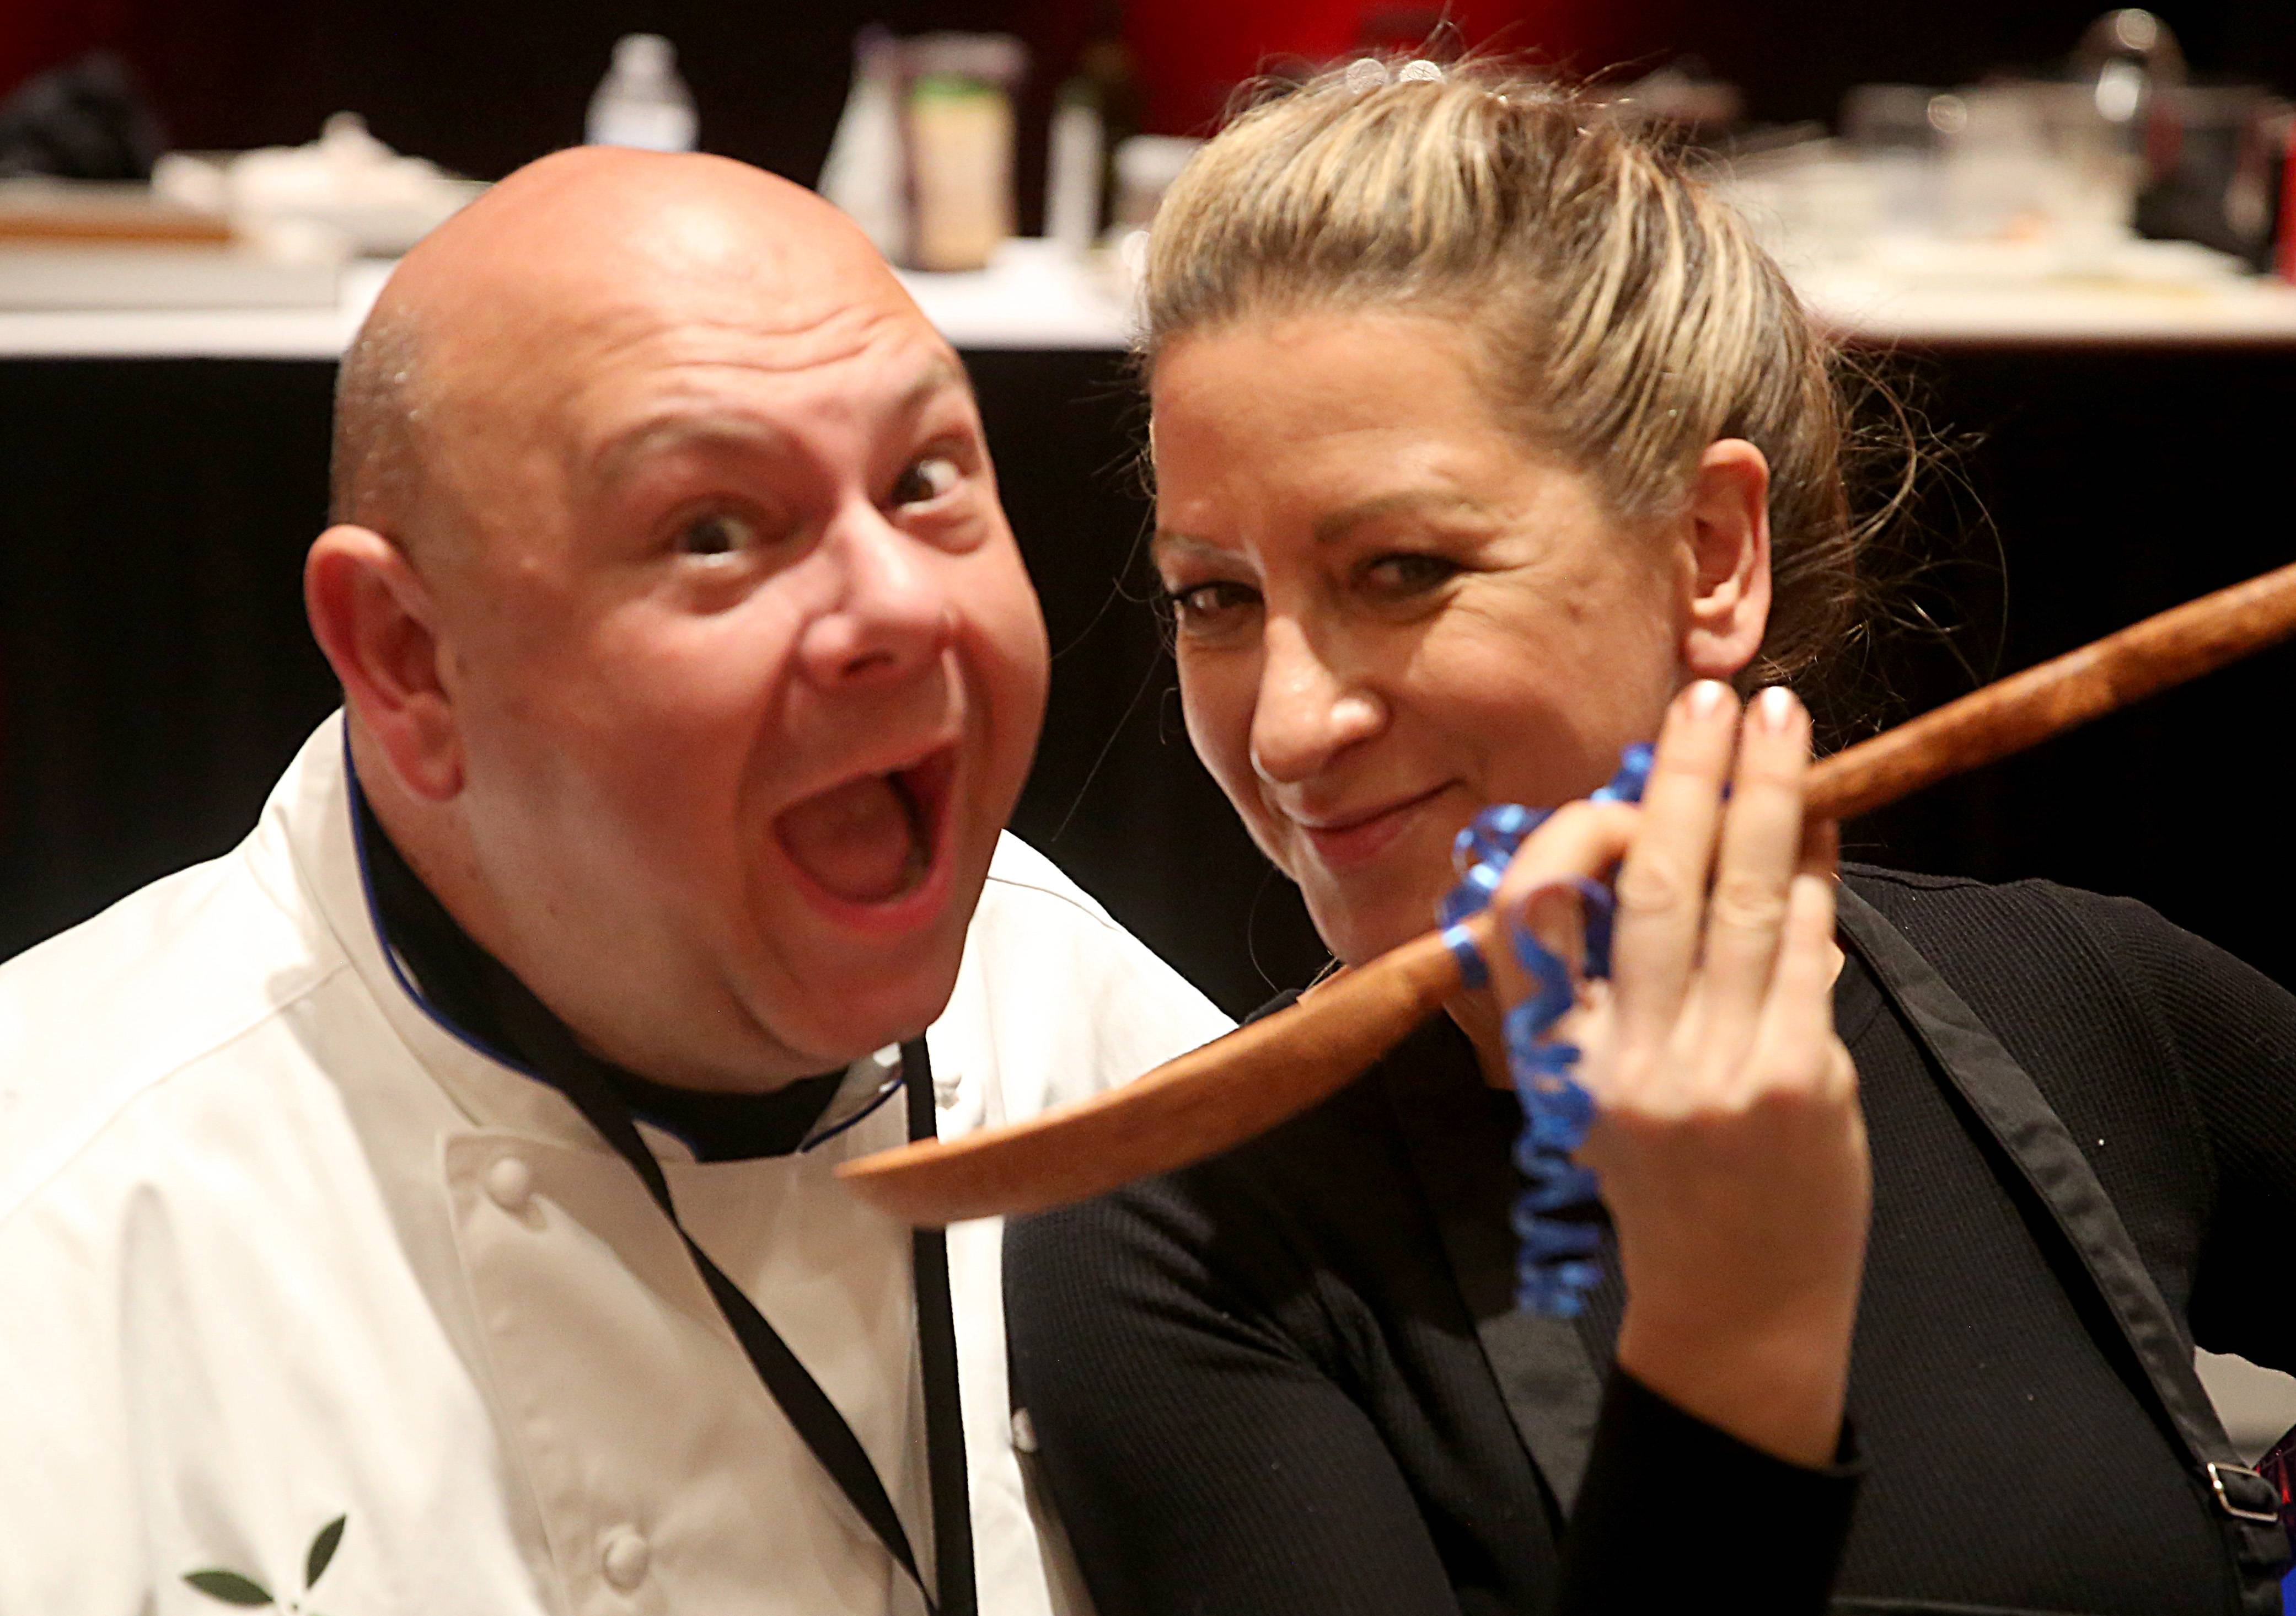 Winner Darla Pitts of Chicago, right, celebrates with her spoon trophy and contest judge Jimmy Nicolau of Grecian Delight Foods at the conclusion of the Daily Herald Cook of the Week Challenge Finale Monday night at Westin Chicago Northwest in Itasca.